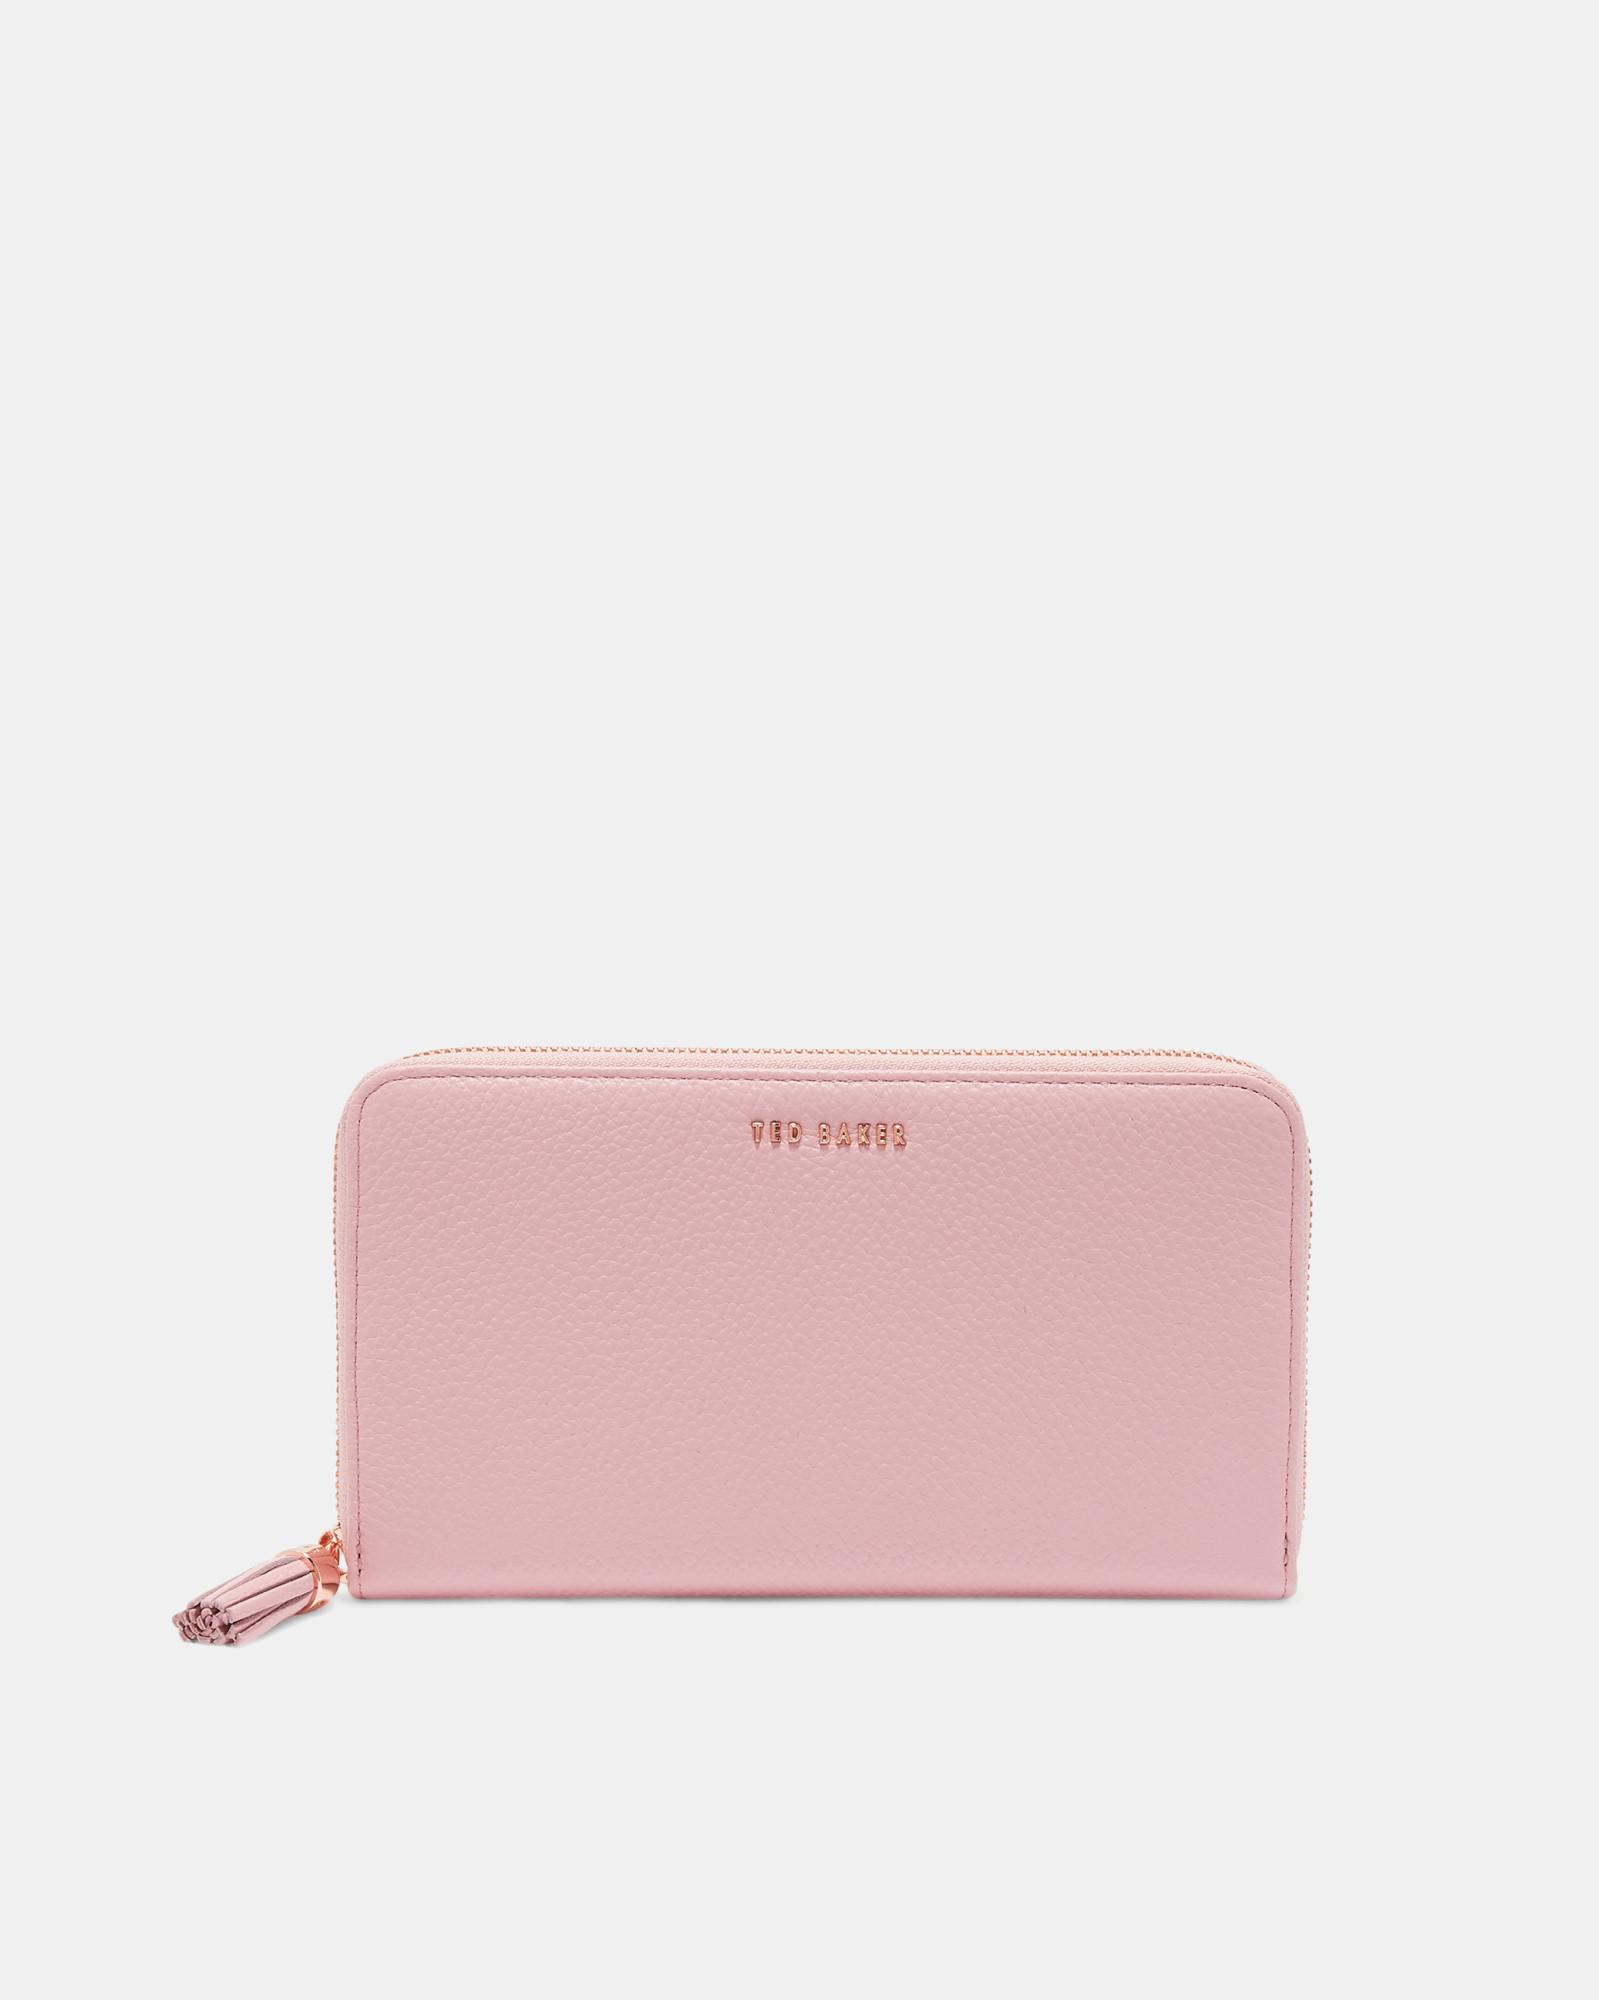 Mini Knot Leather Matinee Purse Ted Baker N3CWbG